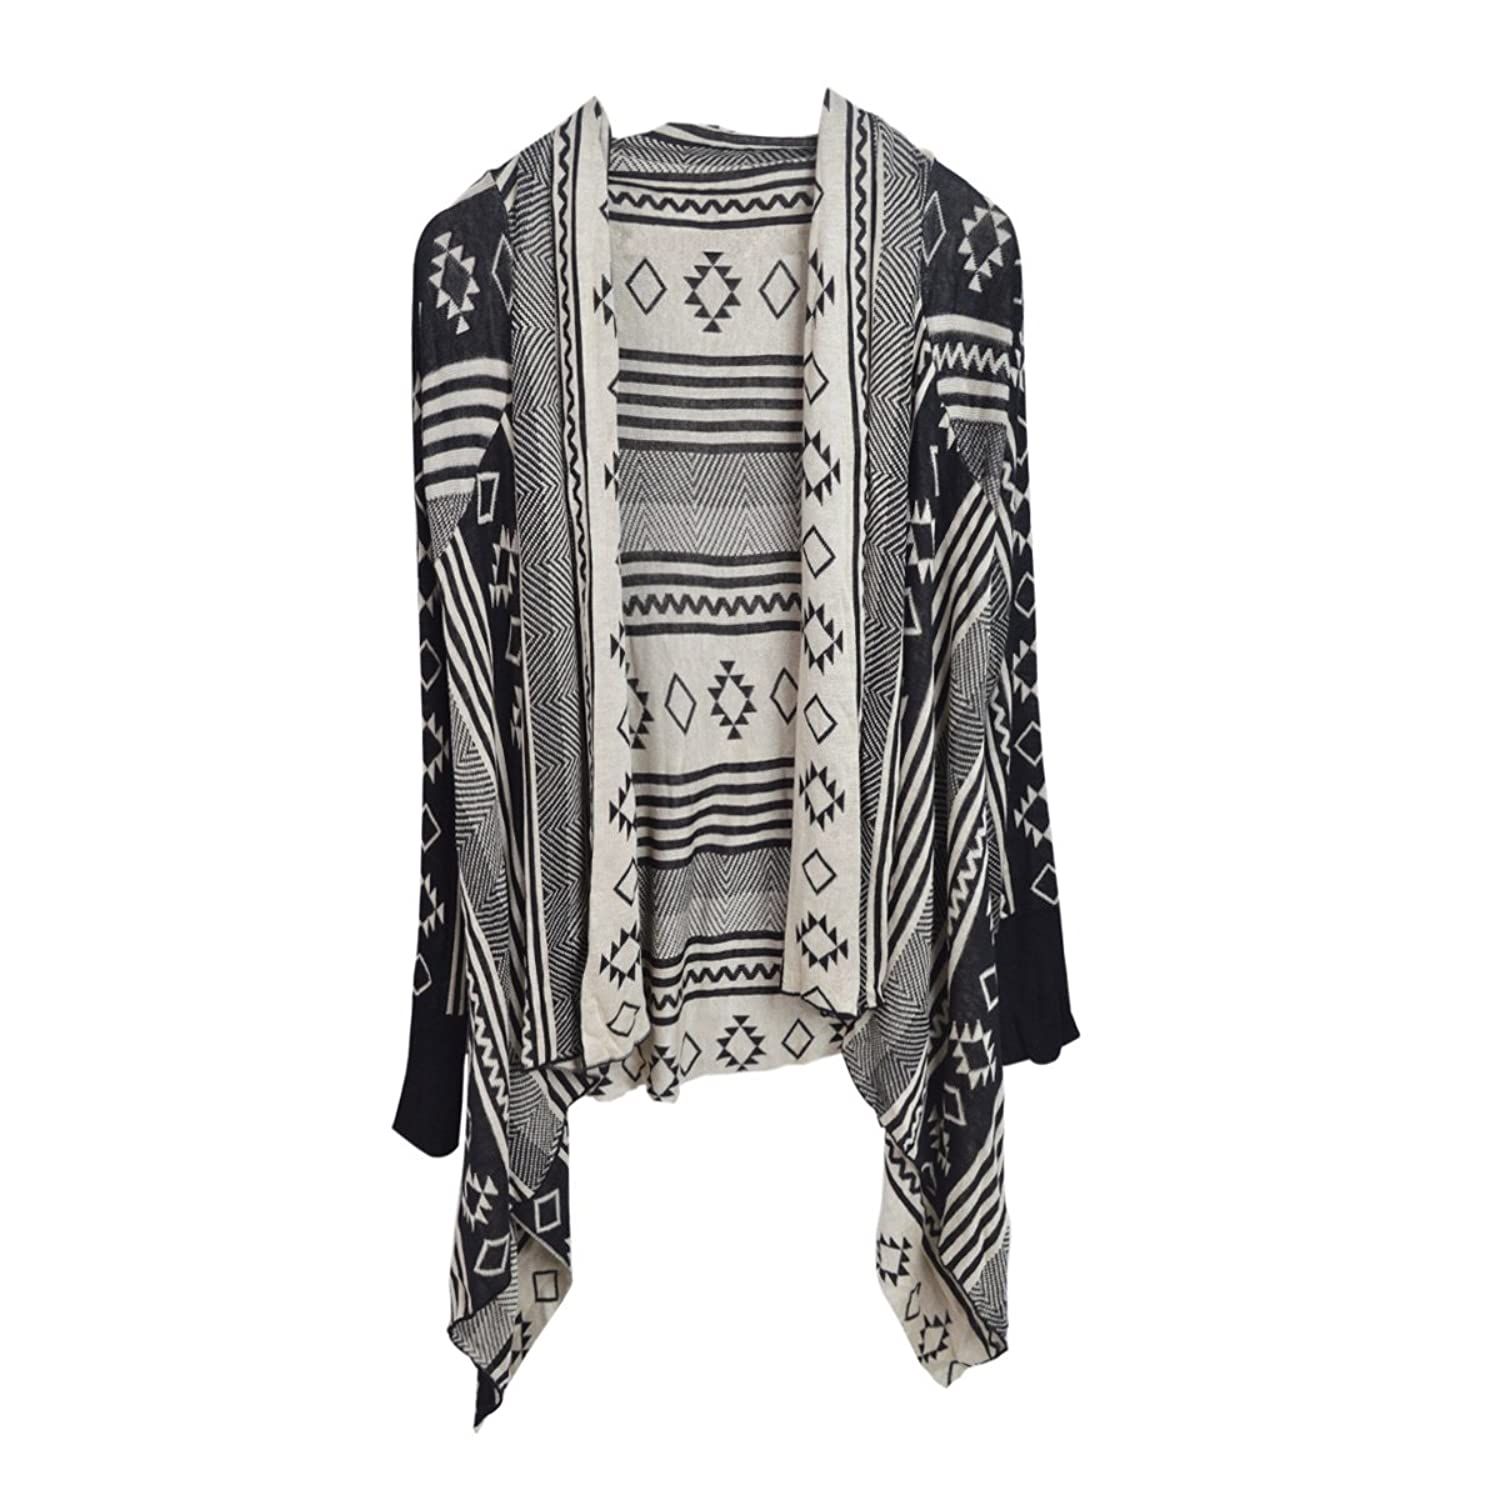 Premium Tribal Aztec Geometric Print Kimono Cardigan Blouse Poncho Sweater Top